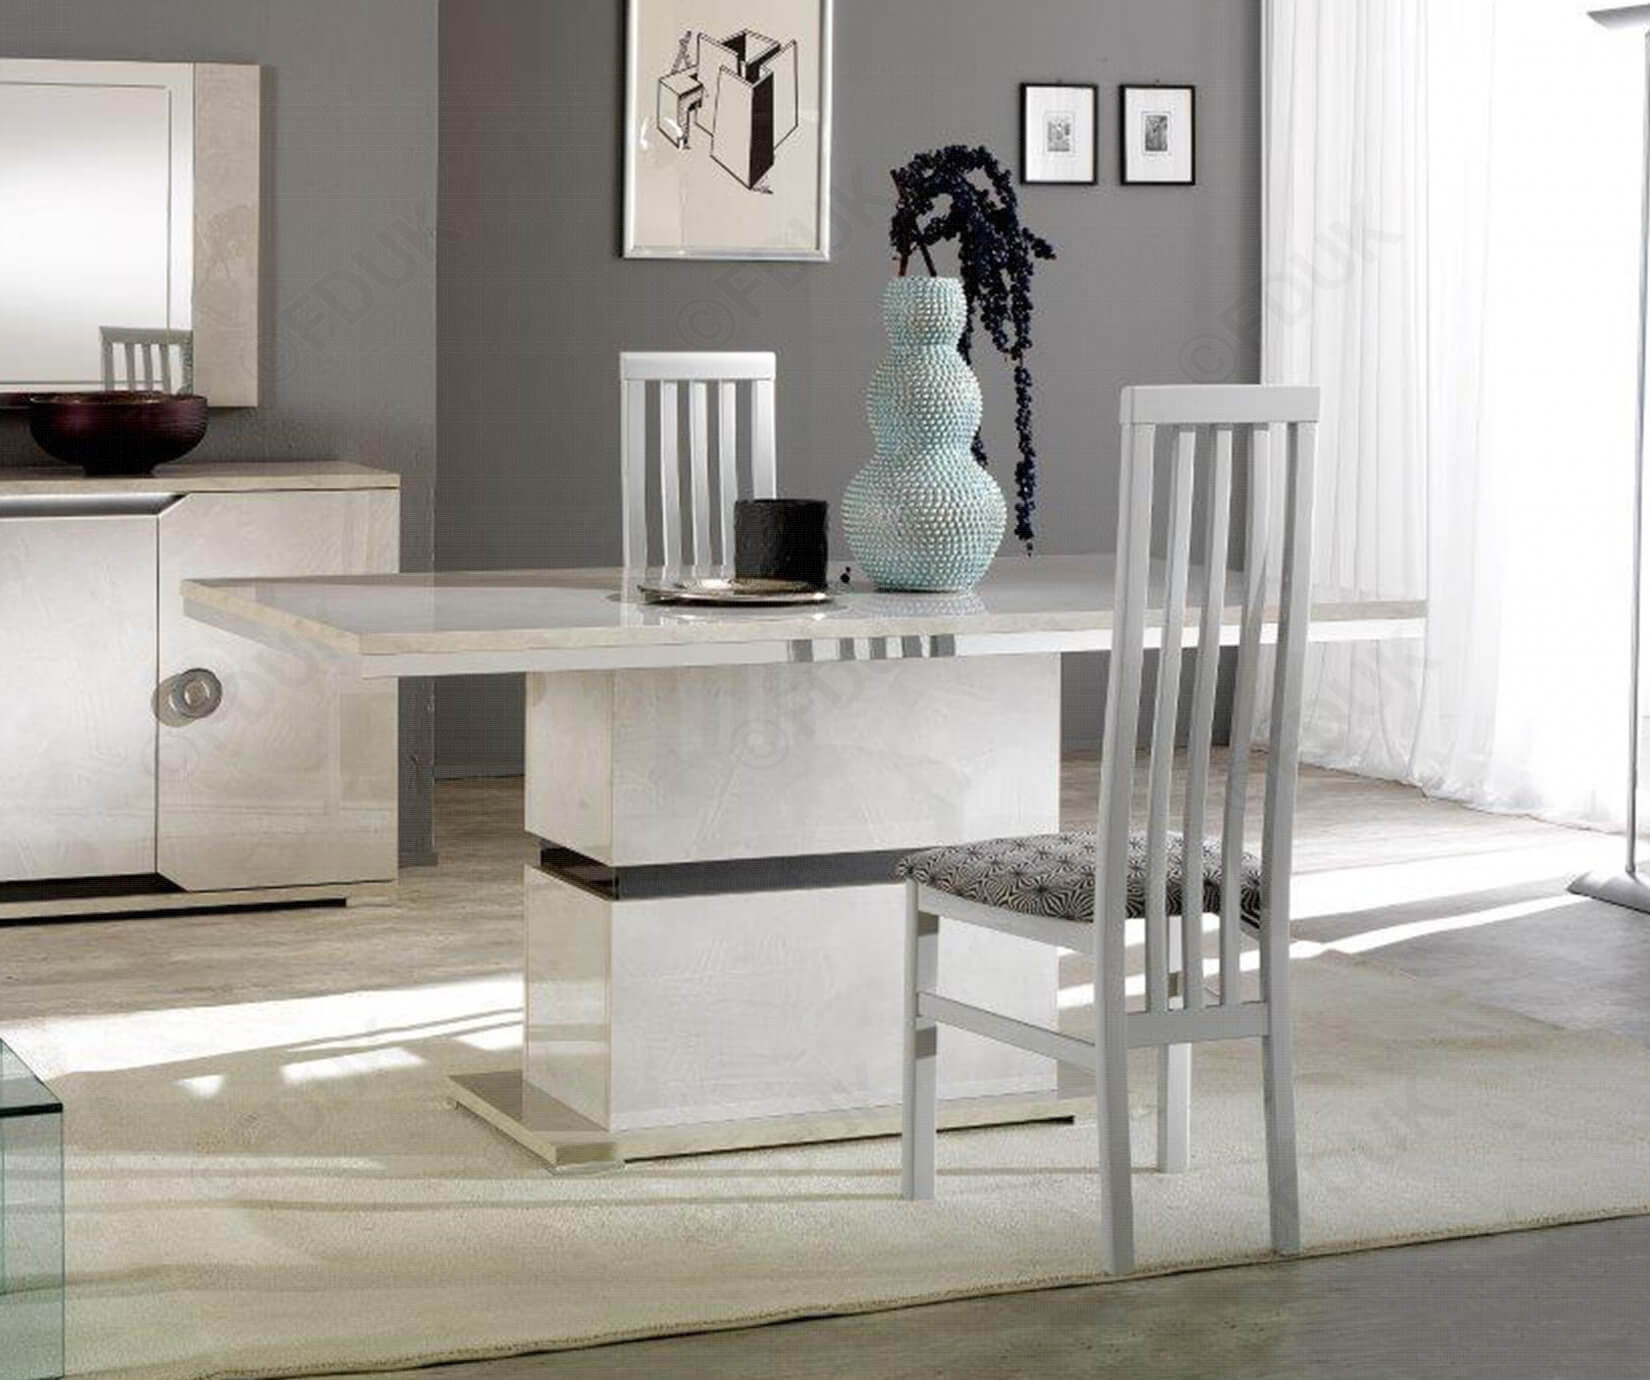 San Martino Mistral Rectangular Dining Table With 4 High Back Dining Chairs Regarding Most Recently Released Martino Dining Tables (View 7 of 25)